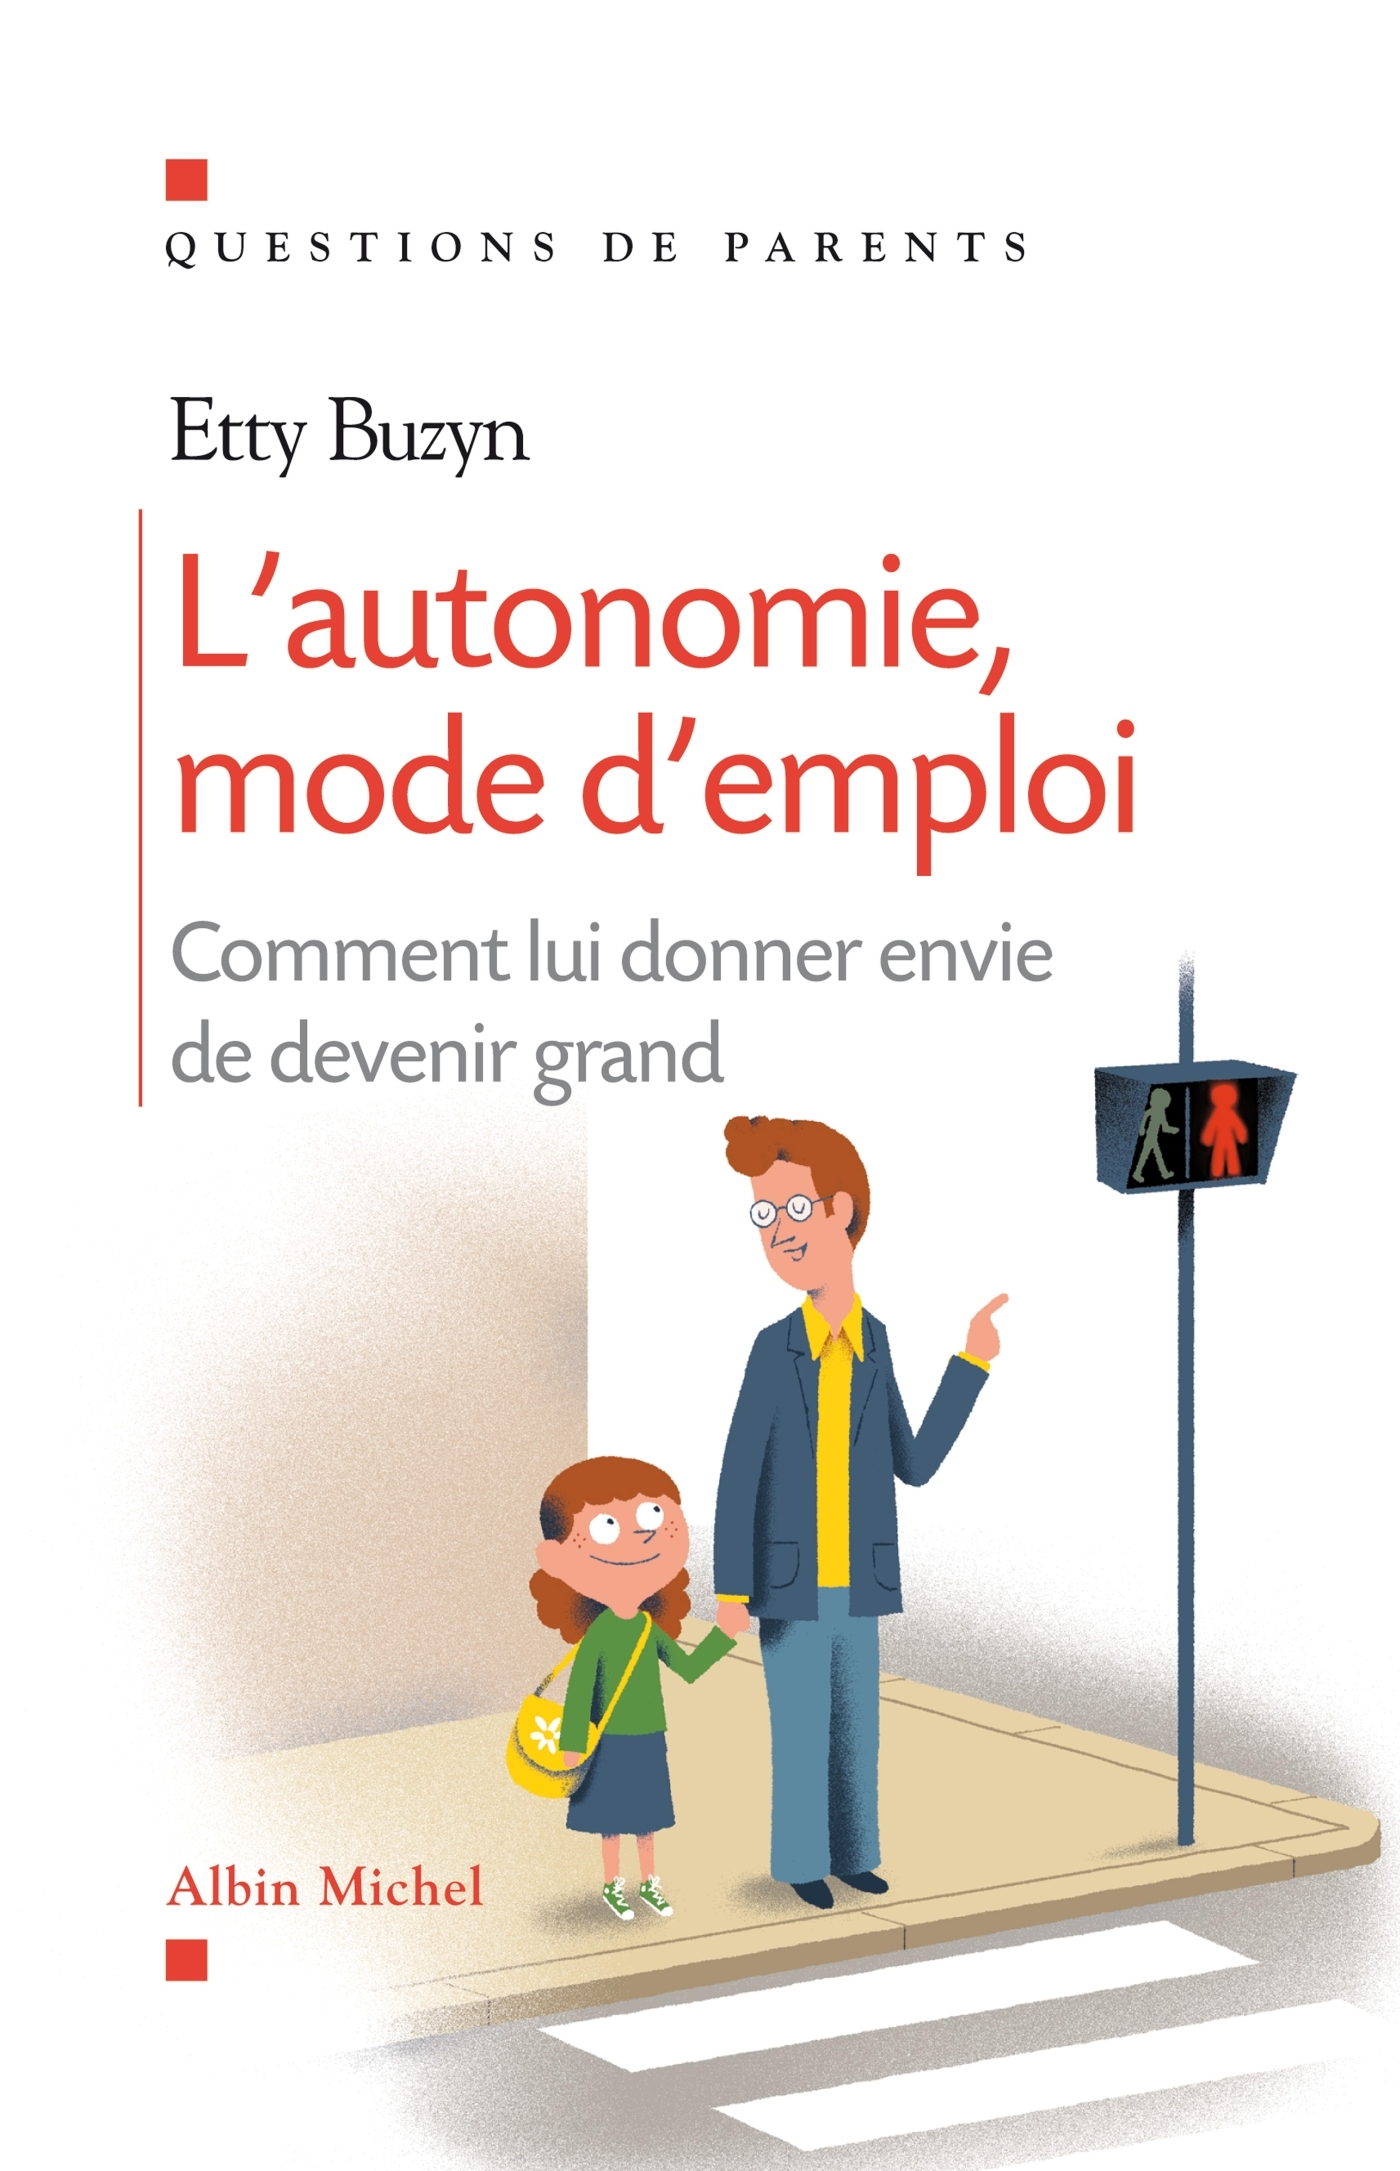 L'AUTONOMIE, MODE D'EMPLOI - COMMENT LUI DONNER ENVIE DE DEVENIR GRAND